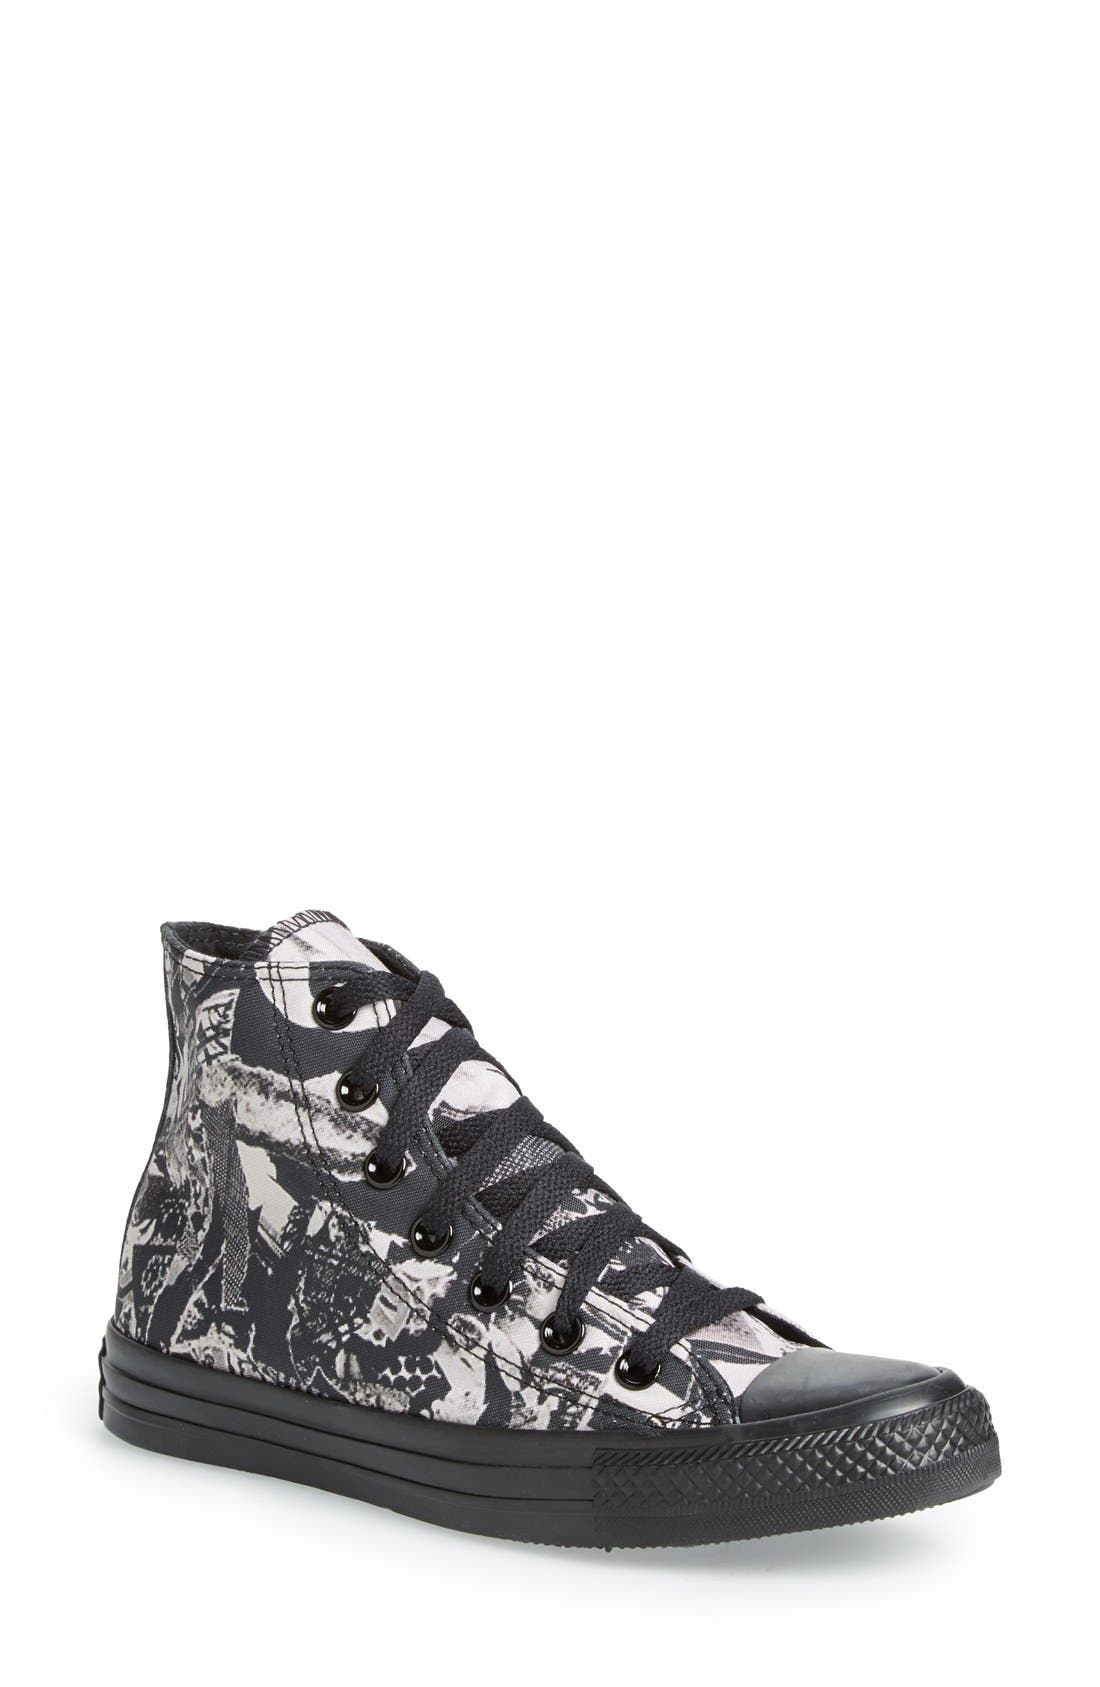 Main Image - Converse Chuck Taylor® All Star® Print High Top Sneaker (Women)